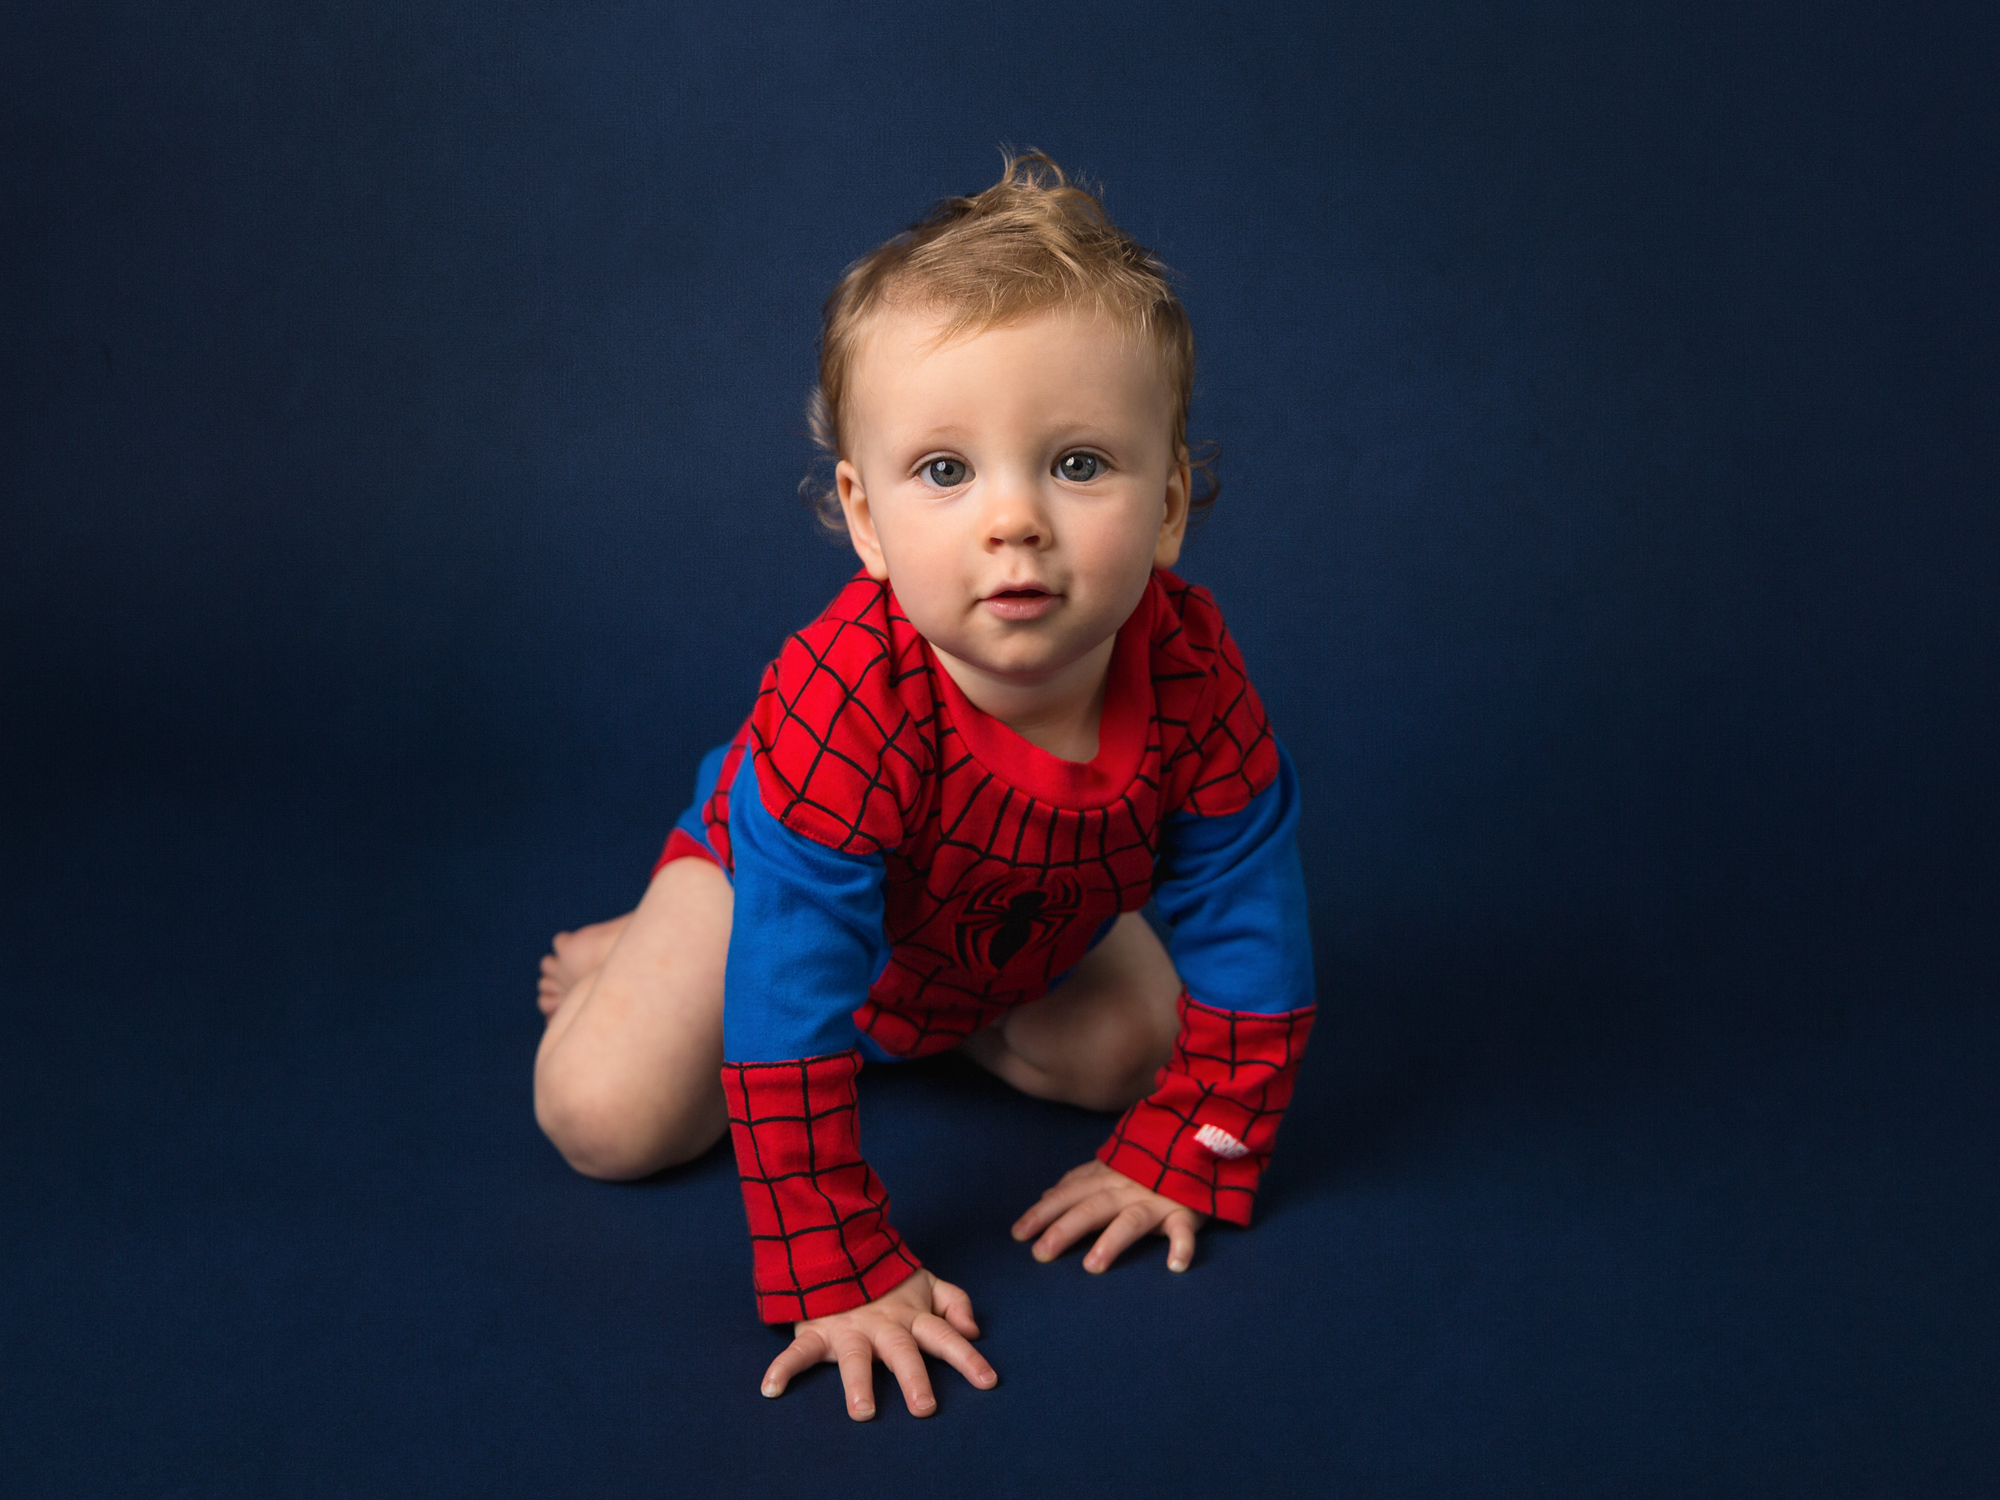 Superhero baby photoshoot in caerphilly, south wales near cardiff